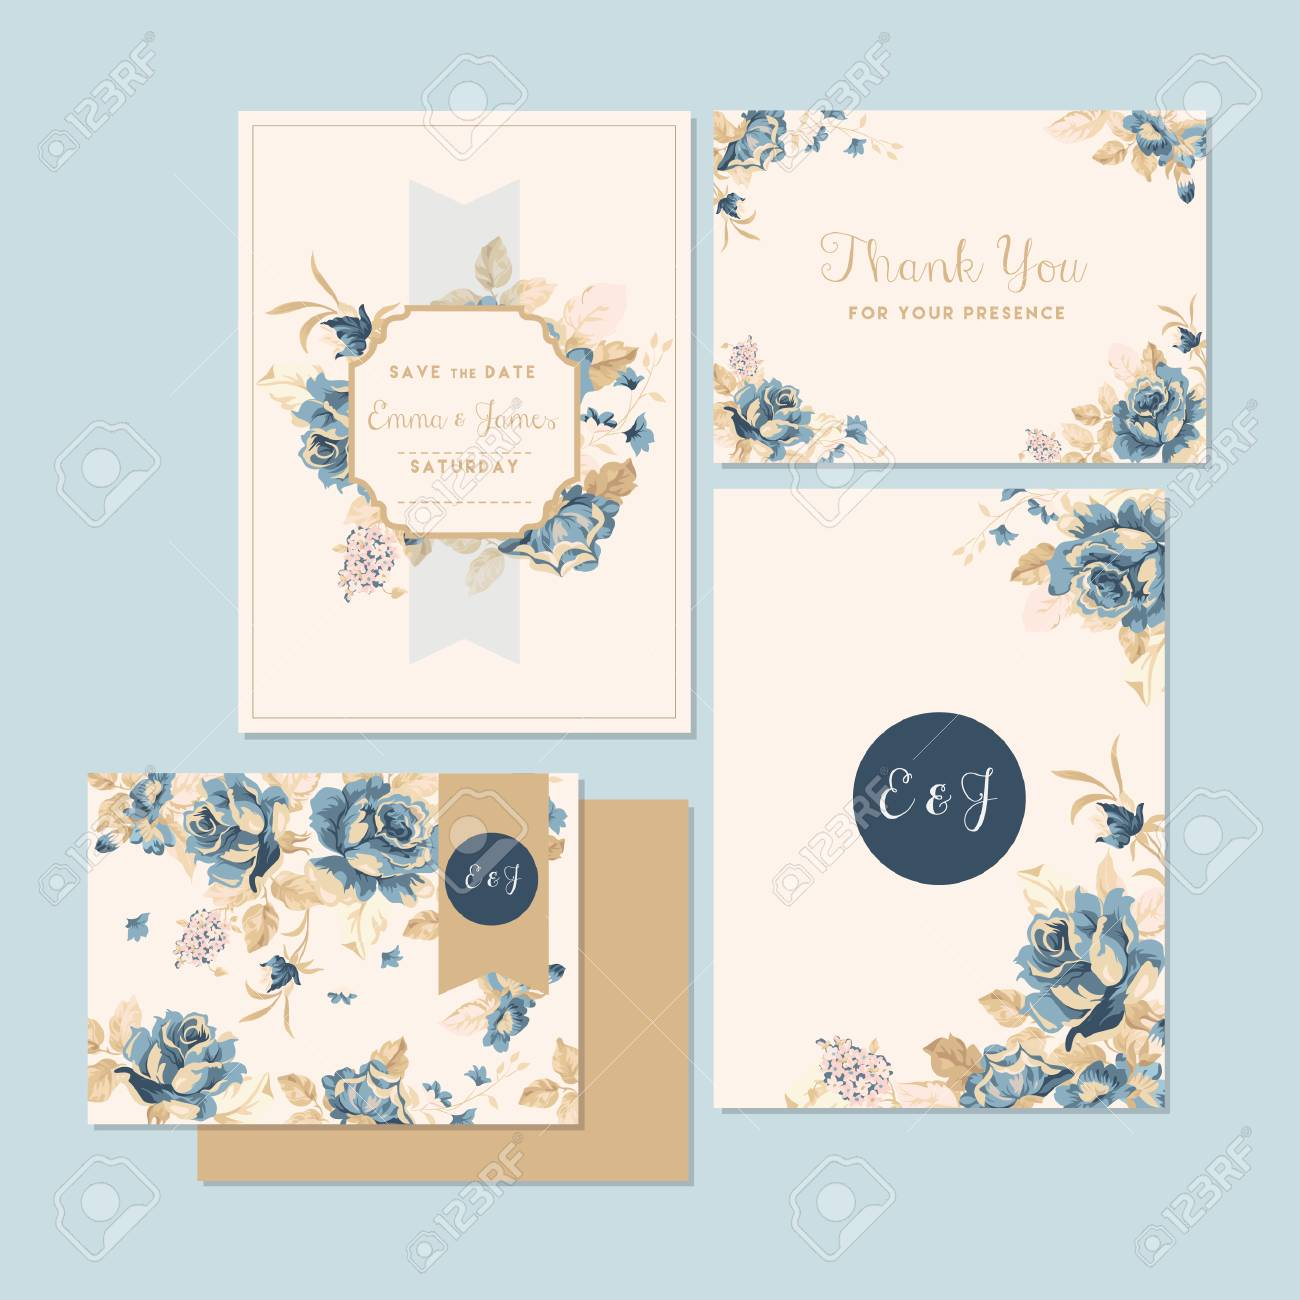 wedding invitation and thank you card - 106674155